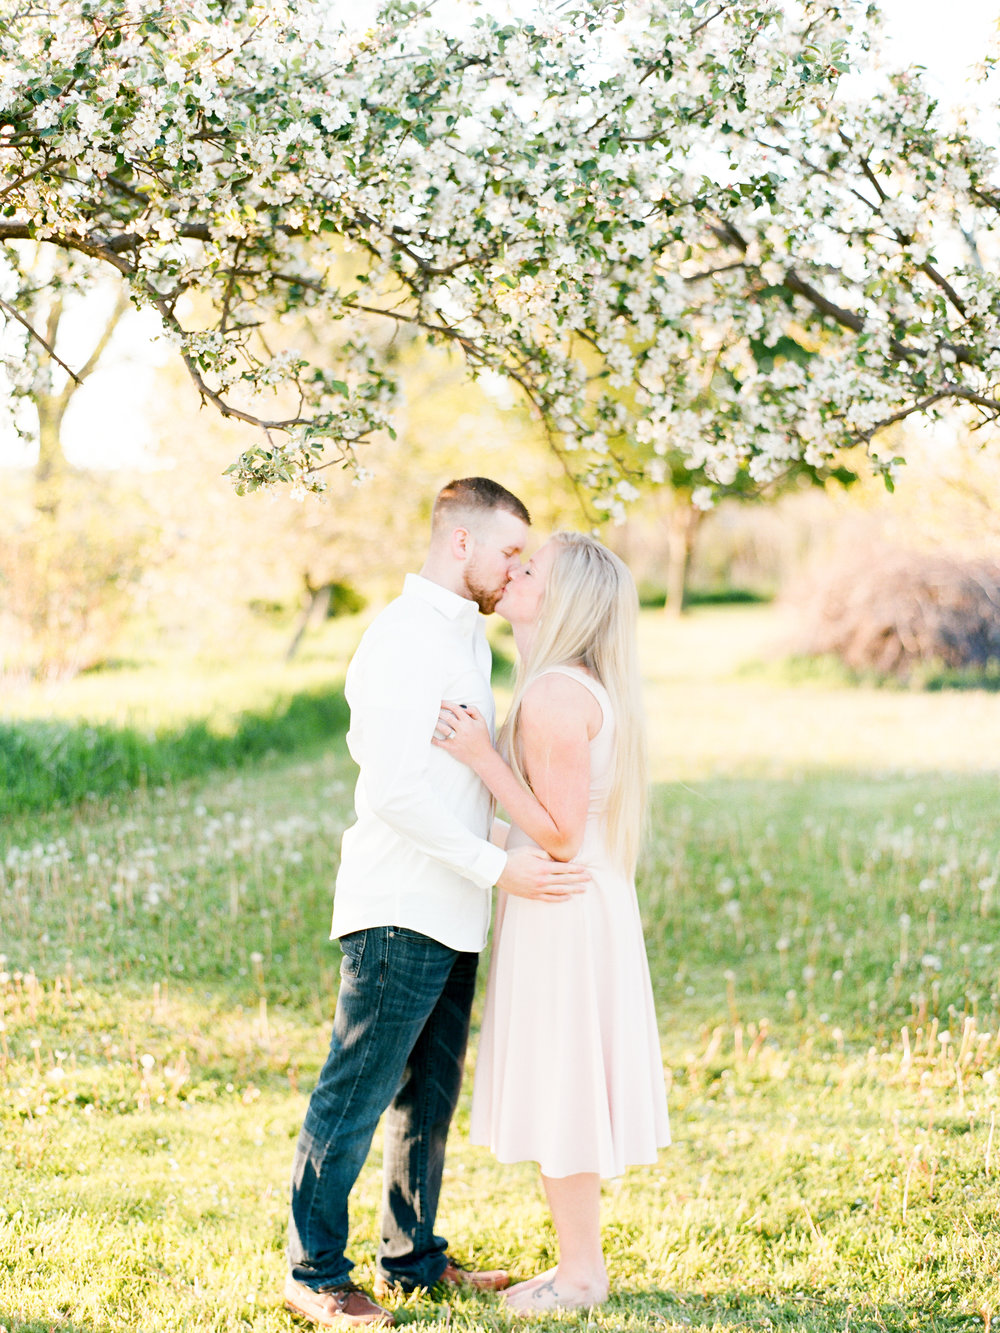 Kohler Engagement Wedding Photographer